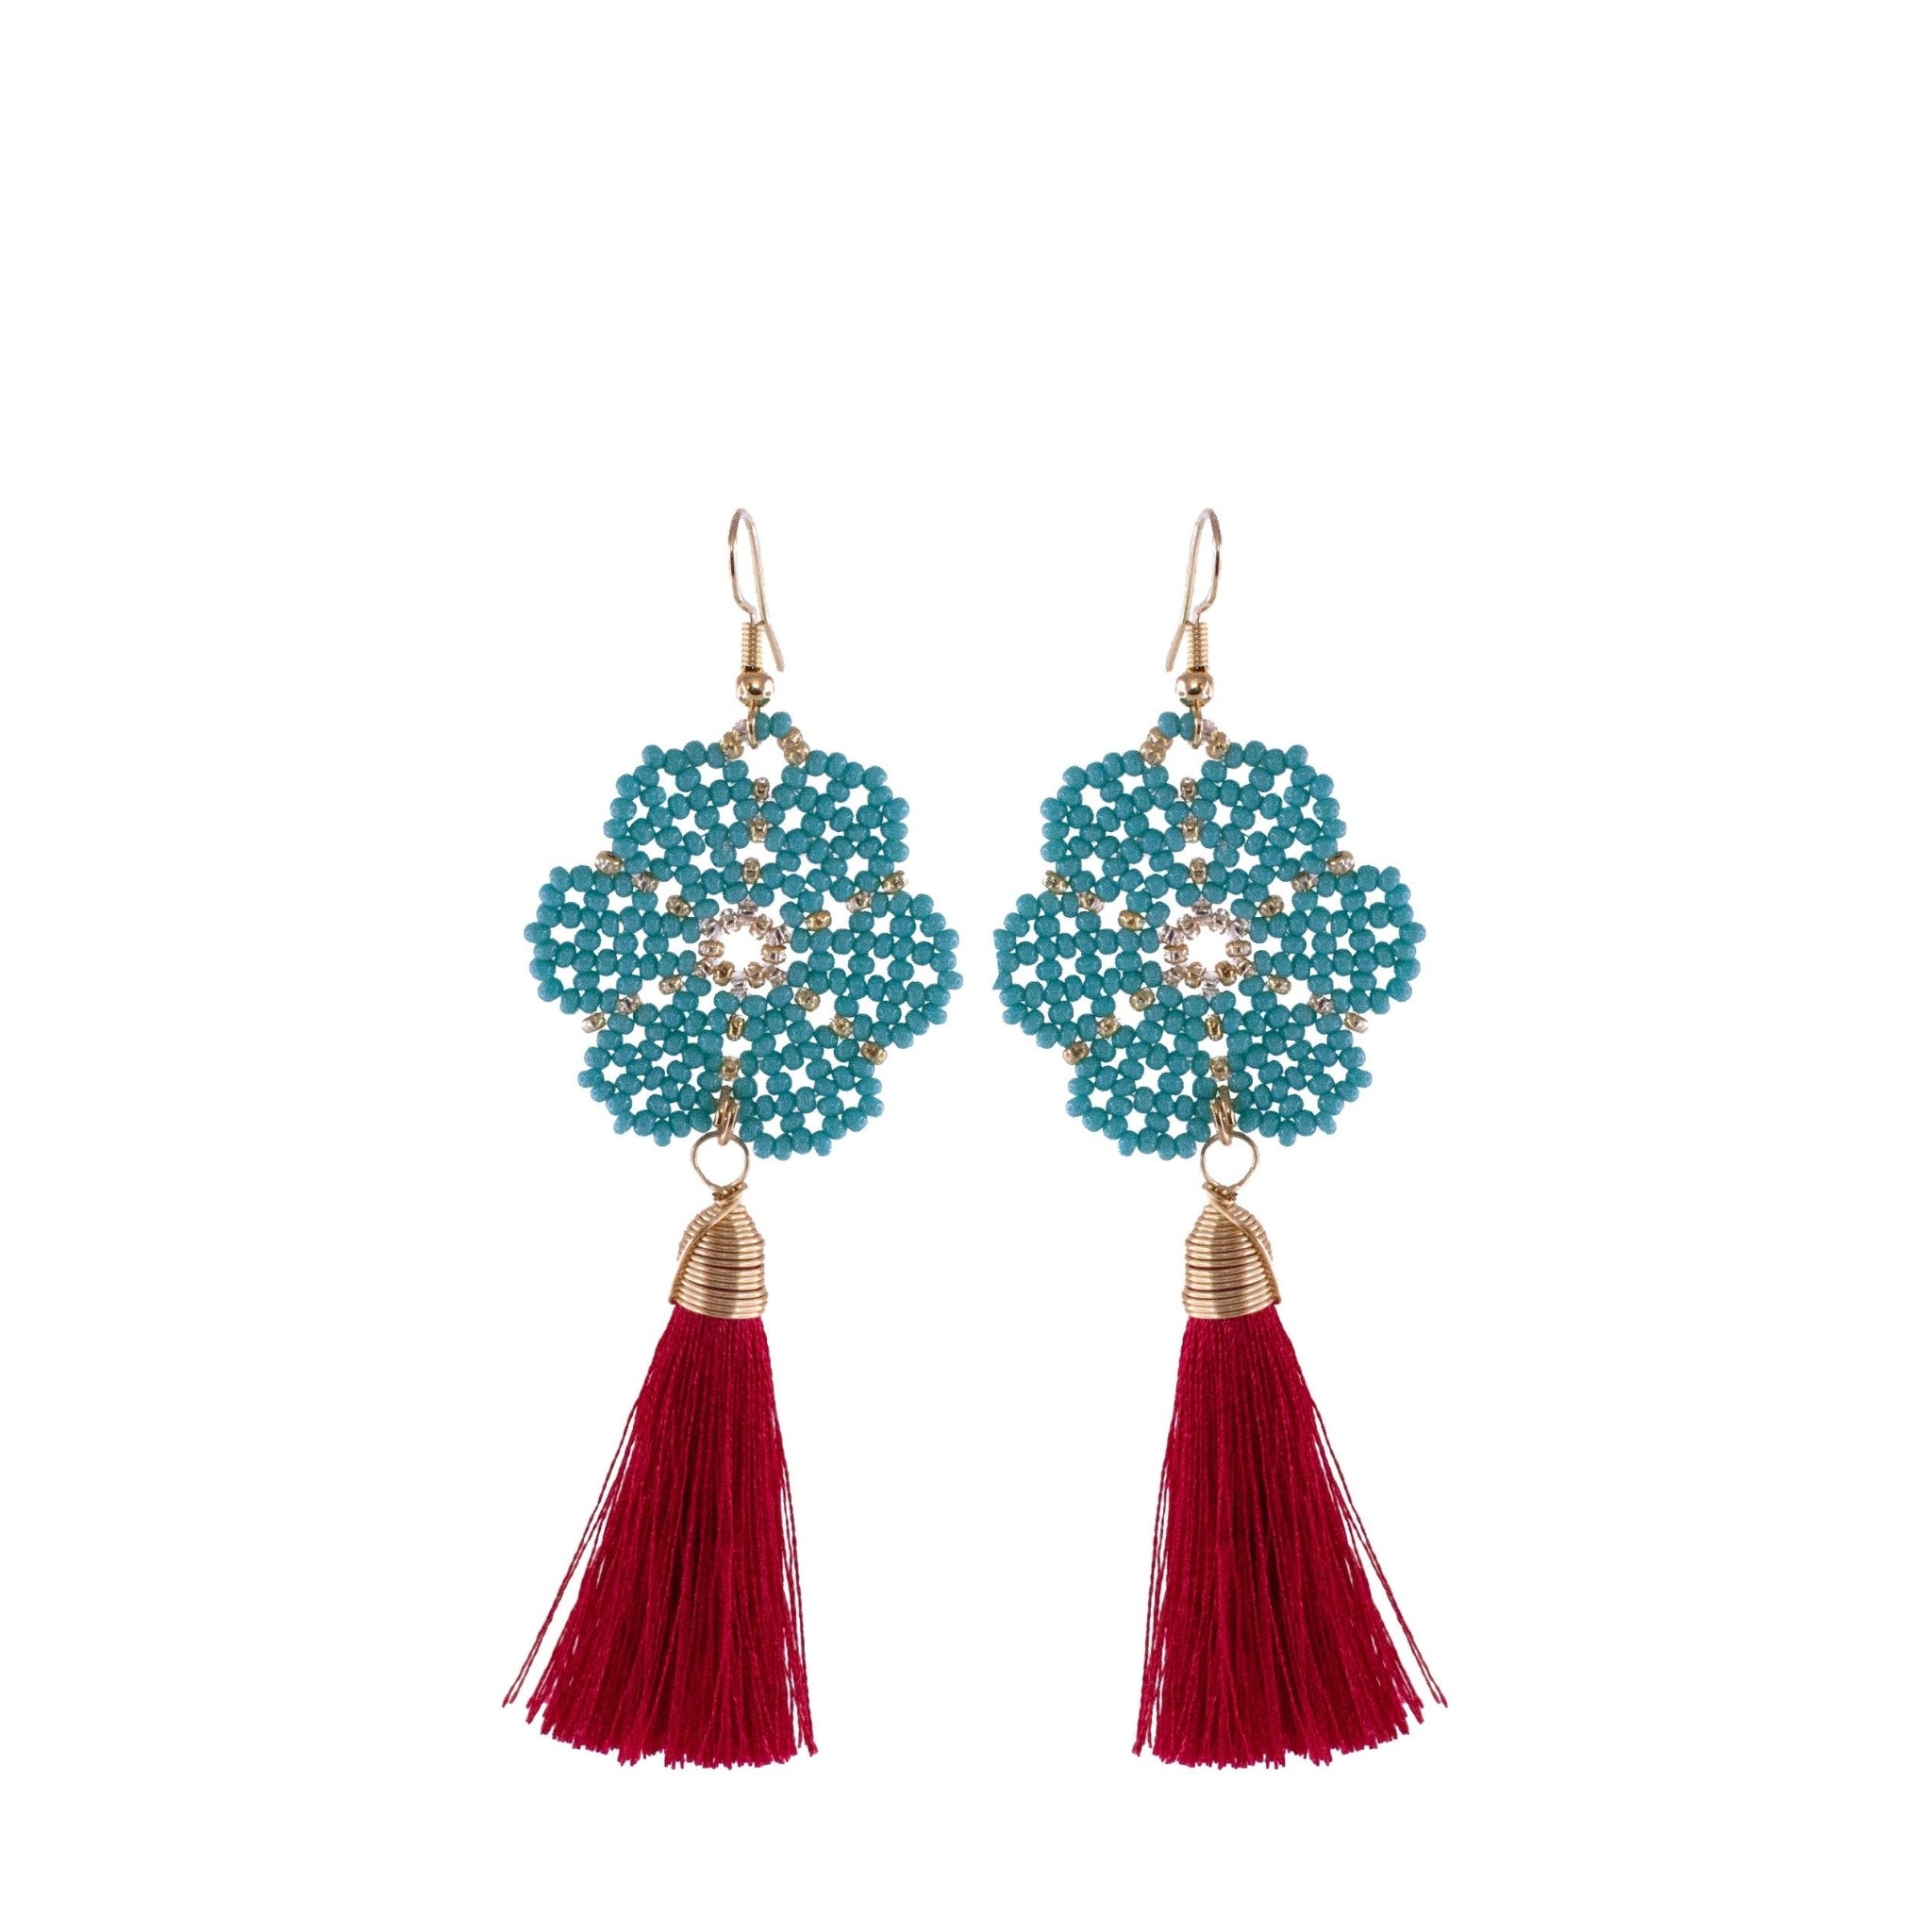 Huichol and Silk Earrings Teal and Red